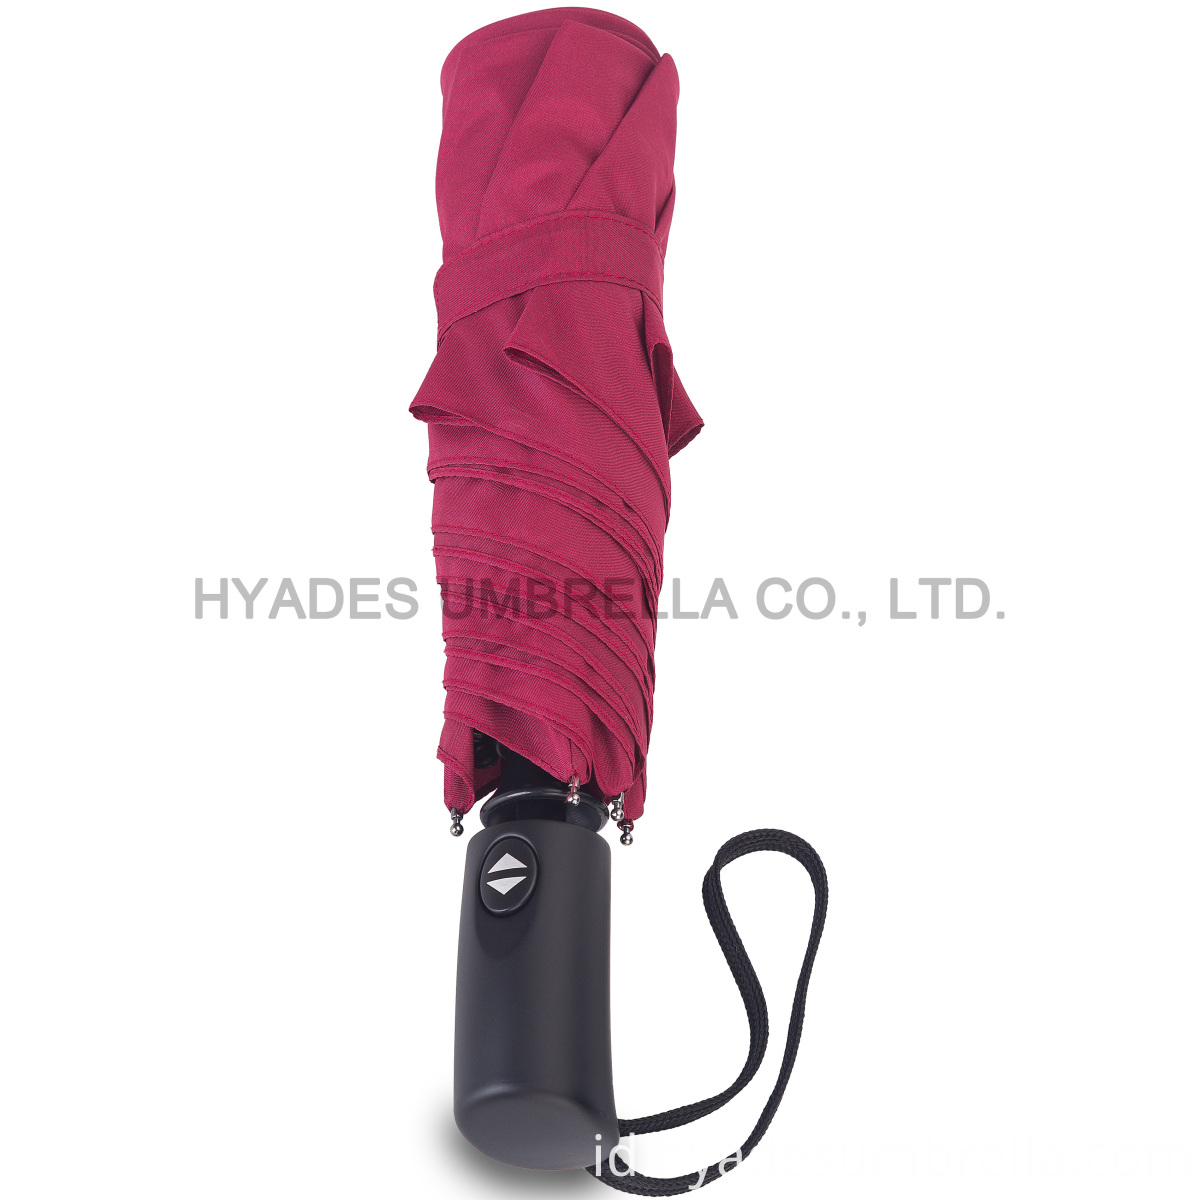 3 section auto open and close folding umbrella